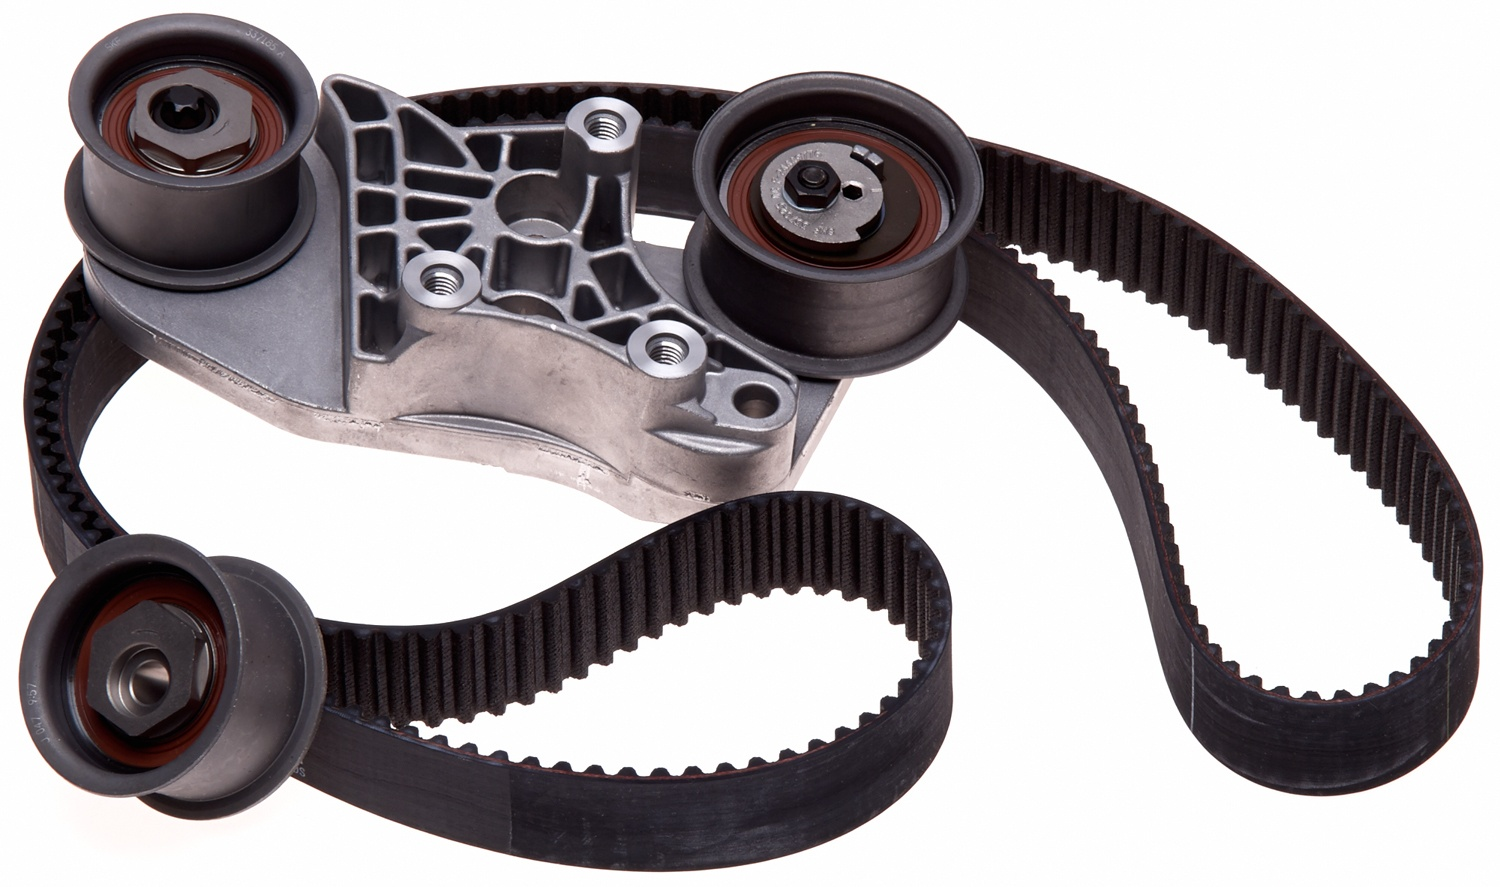 ACDELCO PROFESSIONAL - Engine Timing Belt Component Kit Excludes Water Pump - DCC TCK285B